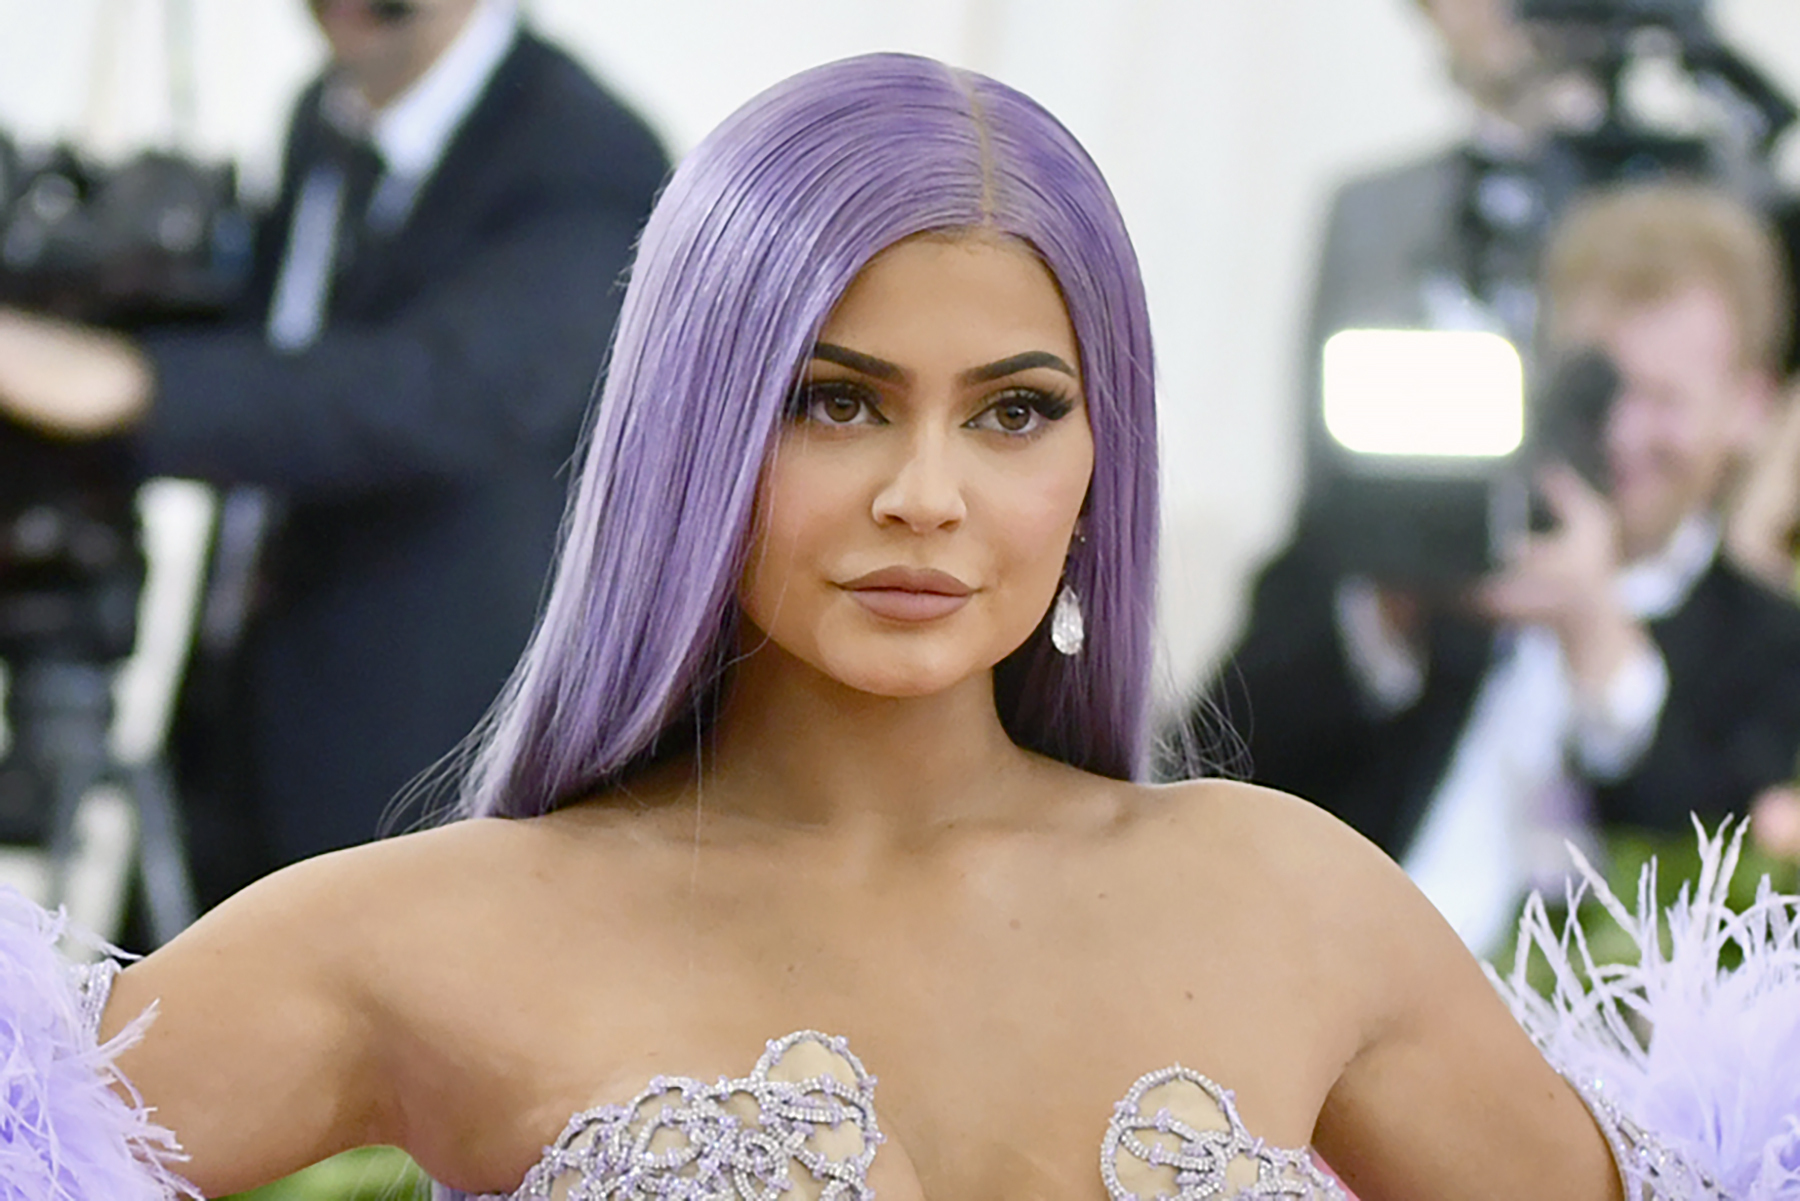 Kylie Jenner attends The Metropolitan Museum of Art's Costume Institute benefit gala in New York earlier this year.